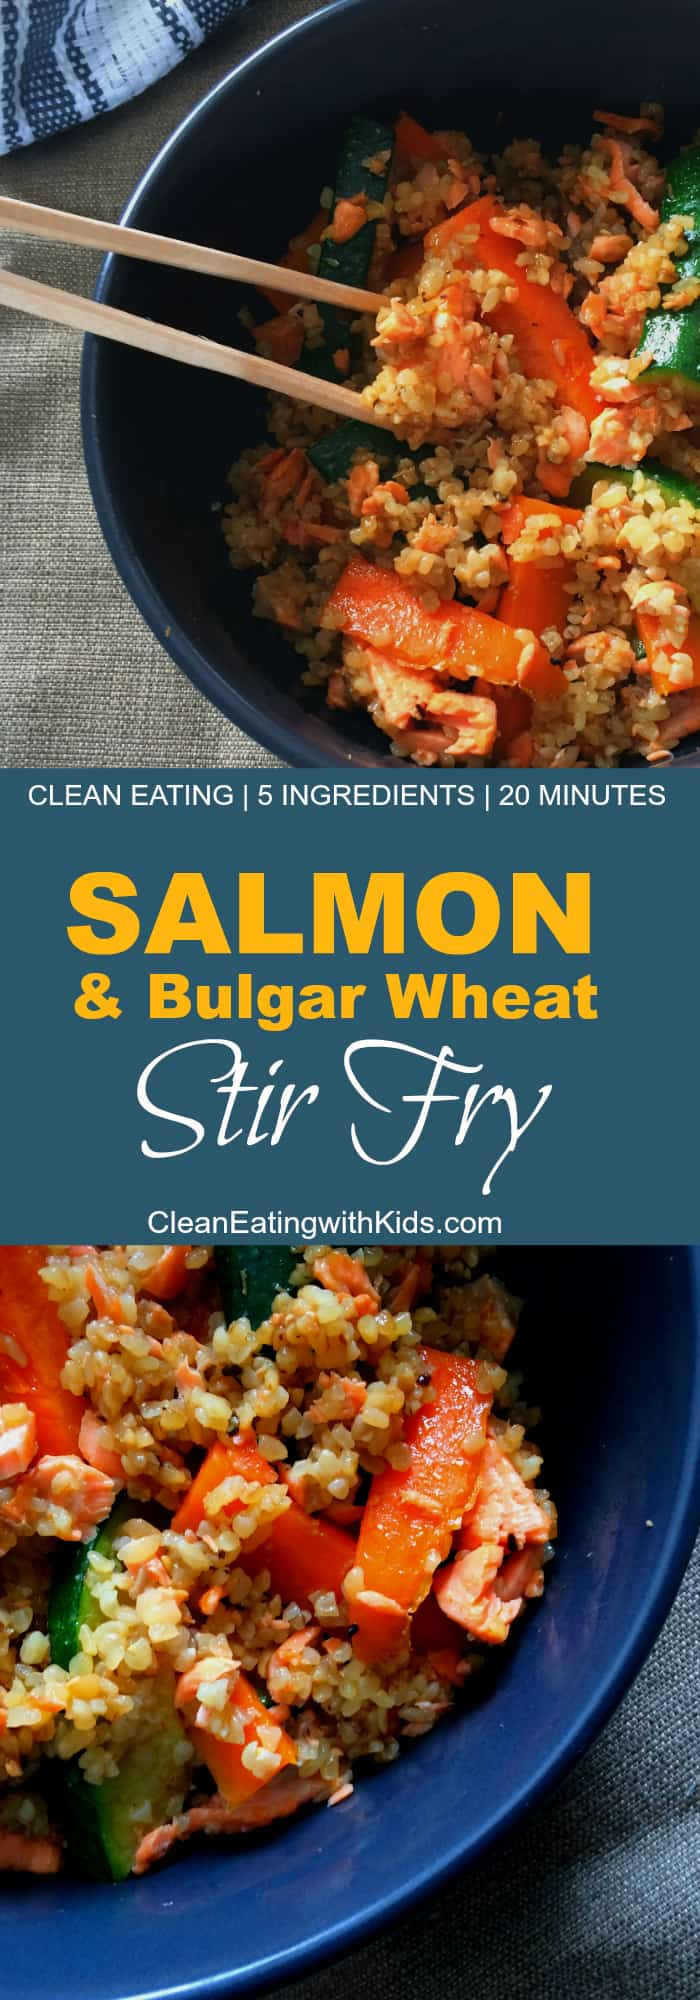 clean eating salmon and bulgar wheat stirfry